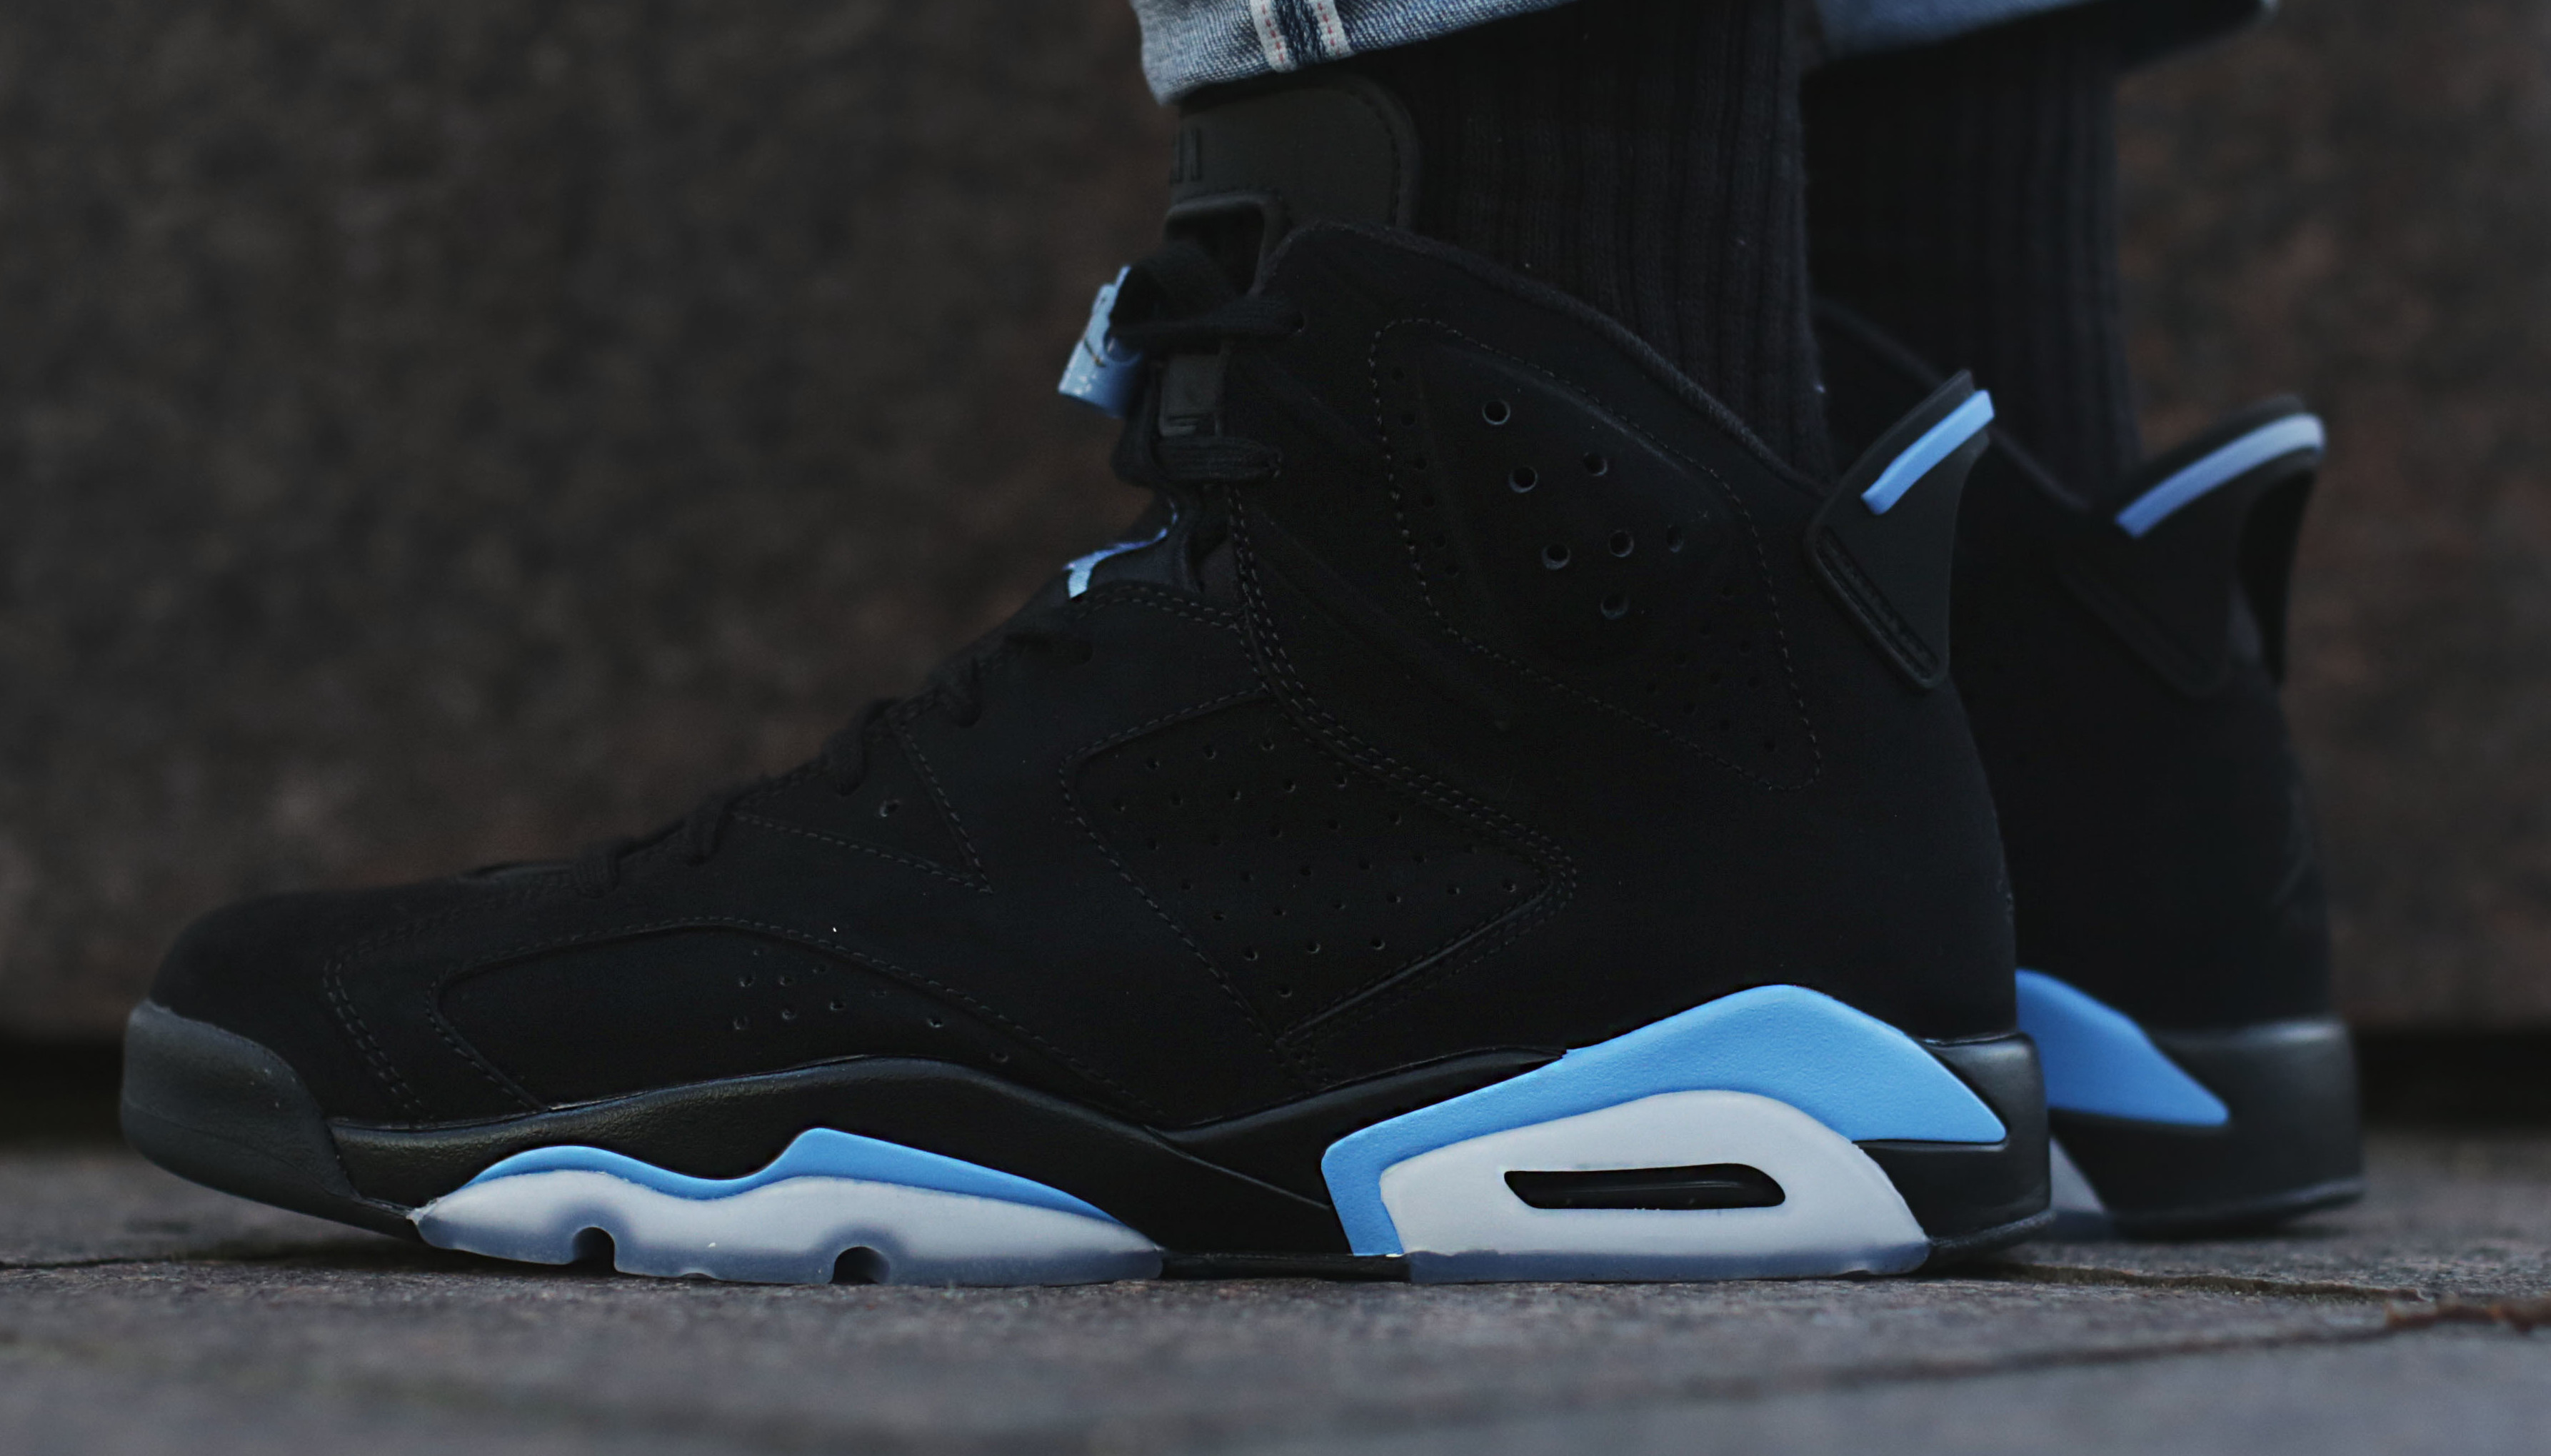 00f3c6bc8929 UNC  Air Jordan 6 Black University Blue 384664-006 Release Date ...